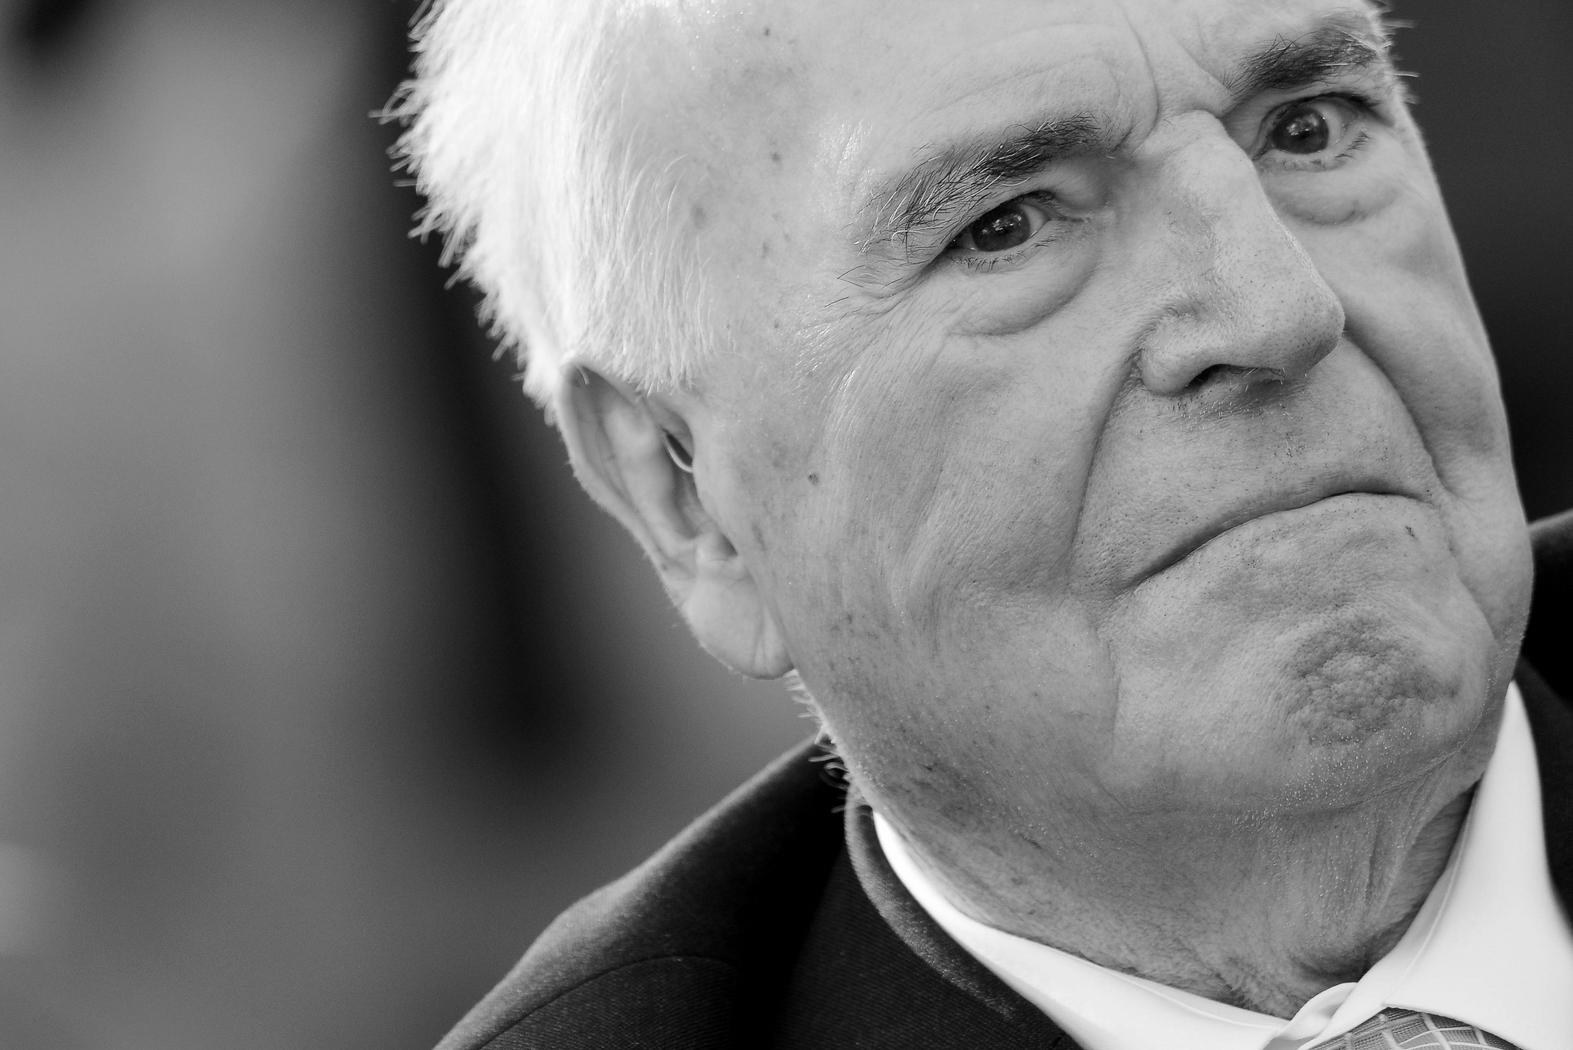 Bavarian government honors former Chancellor Kohl